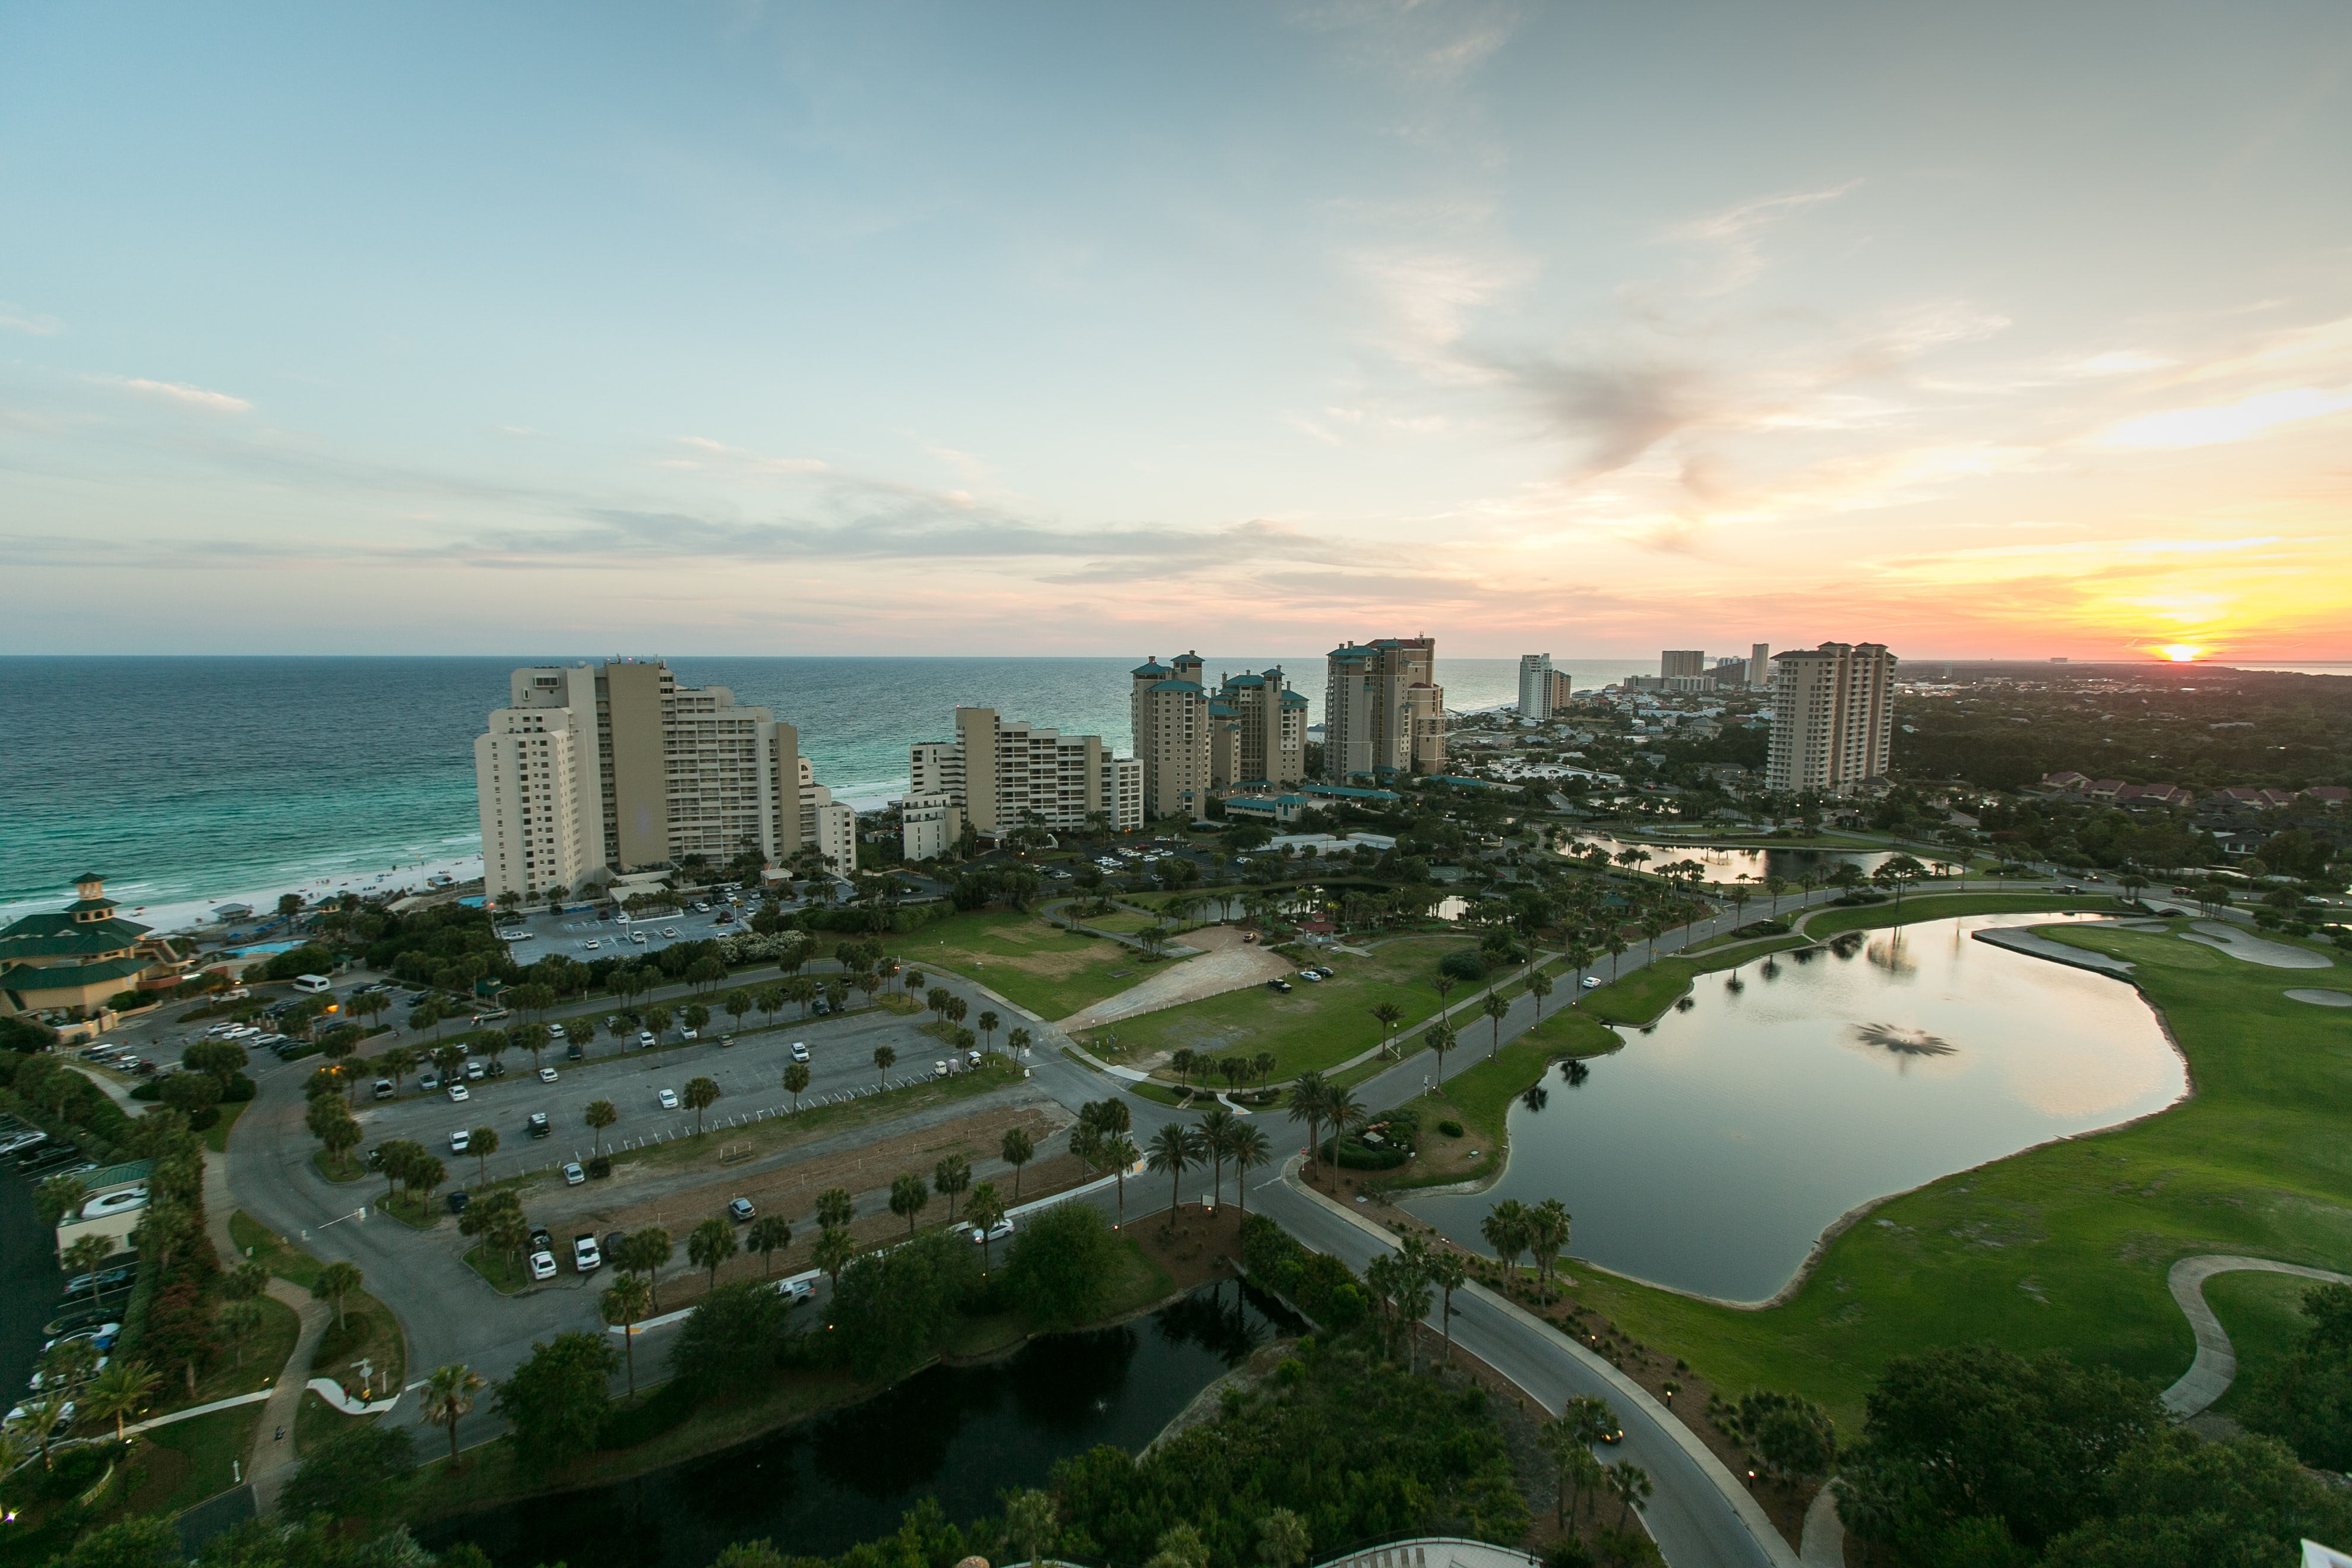 Drone shot of skyscrapers, blue lake, parking lot and palm trees in Destin at sunset